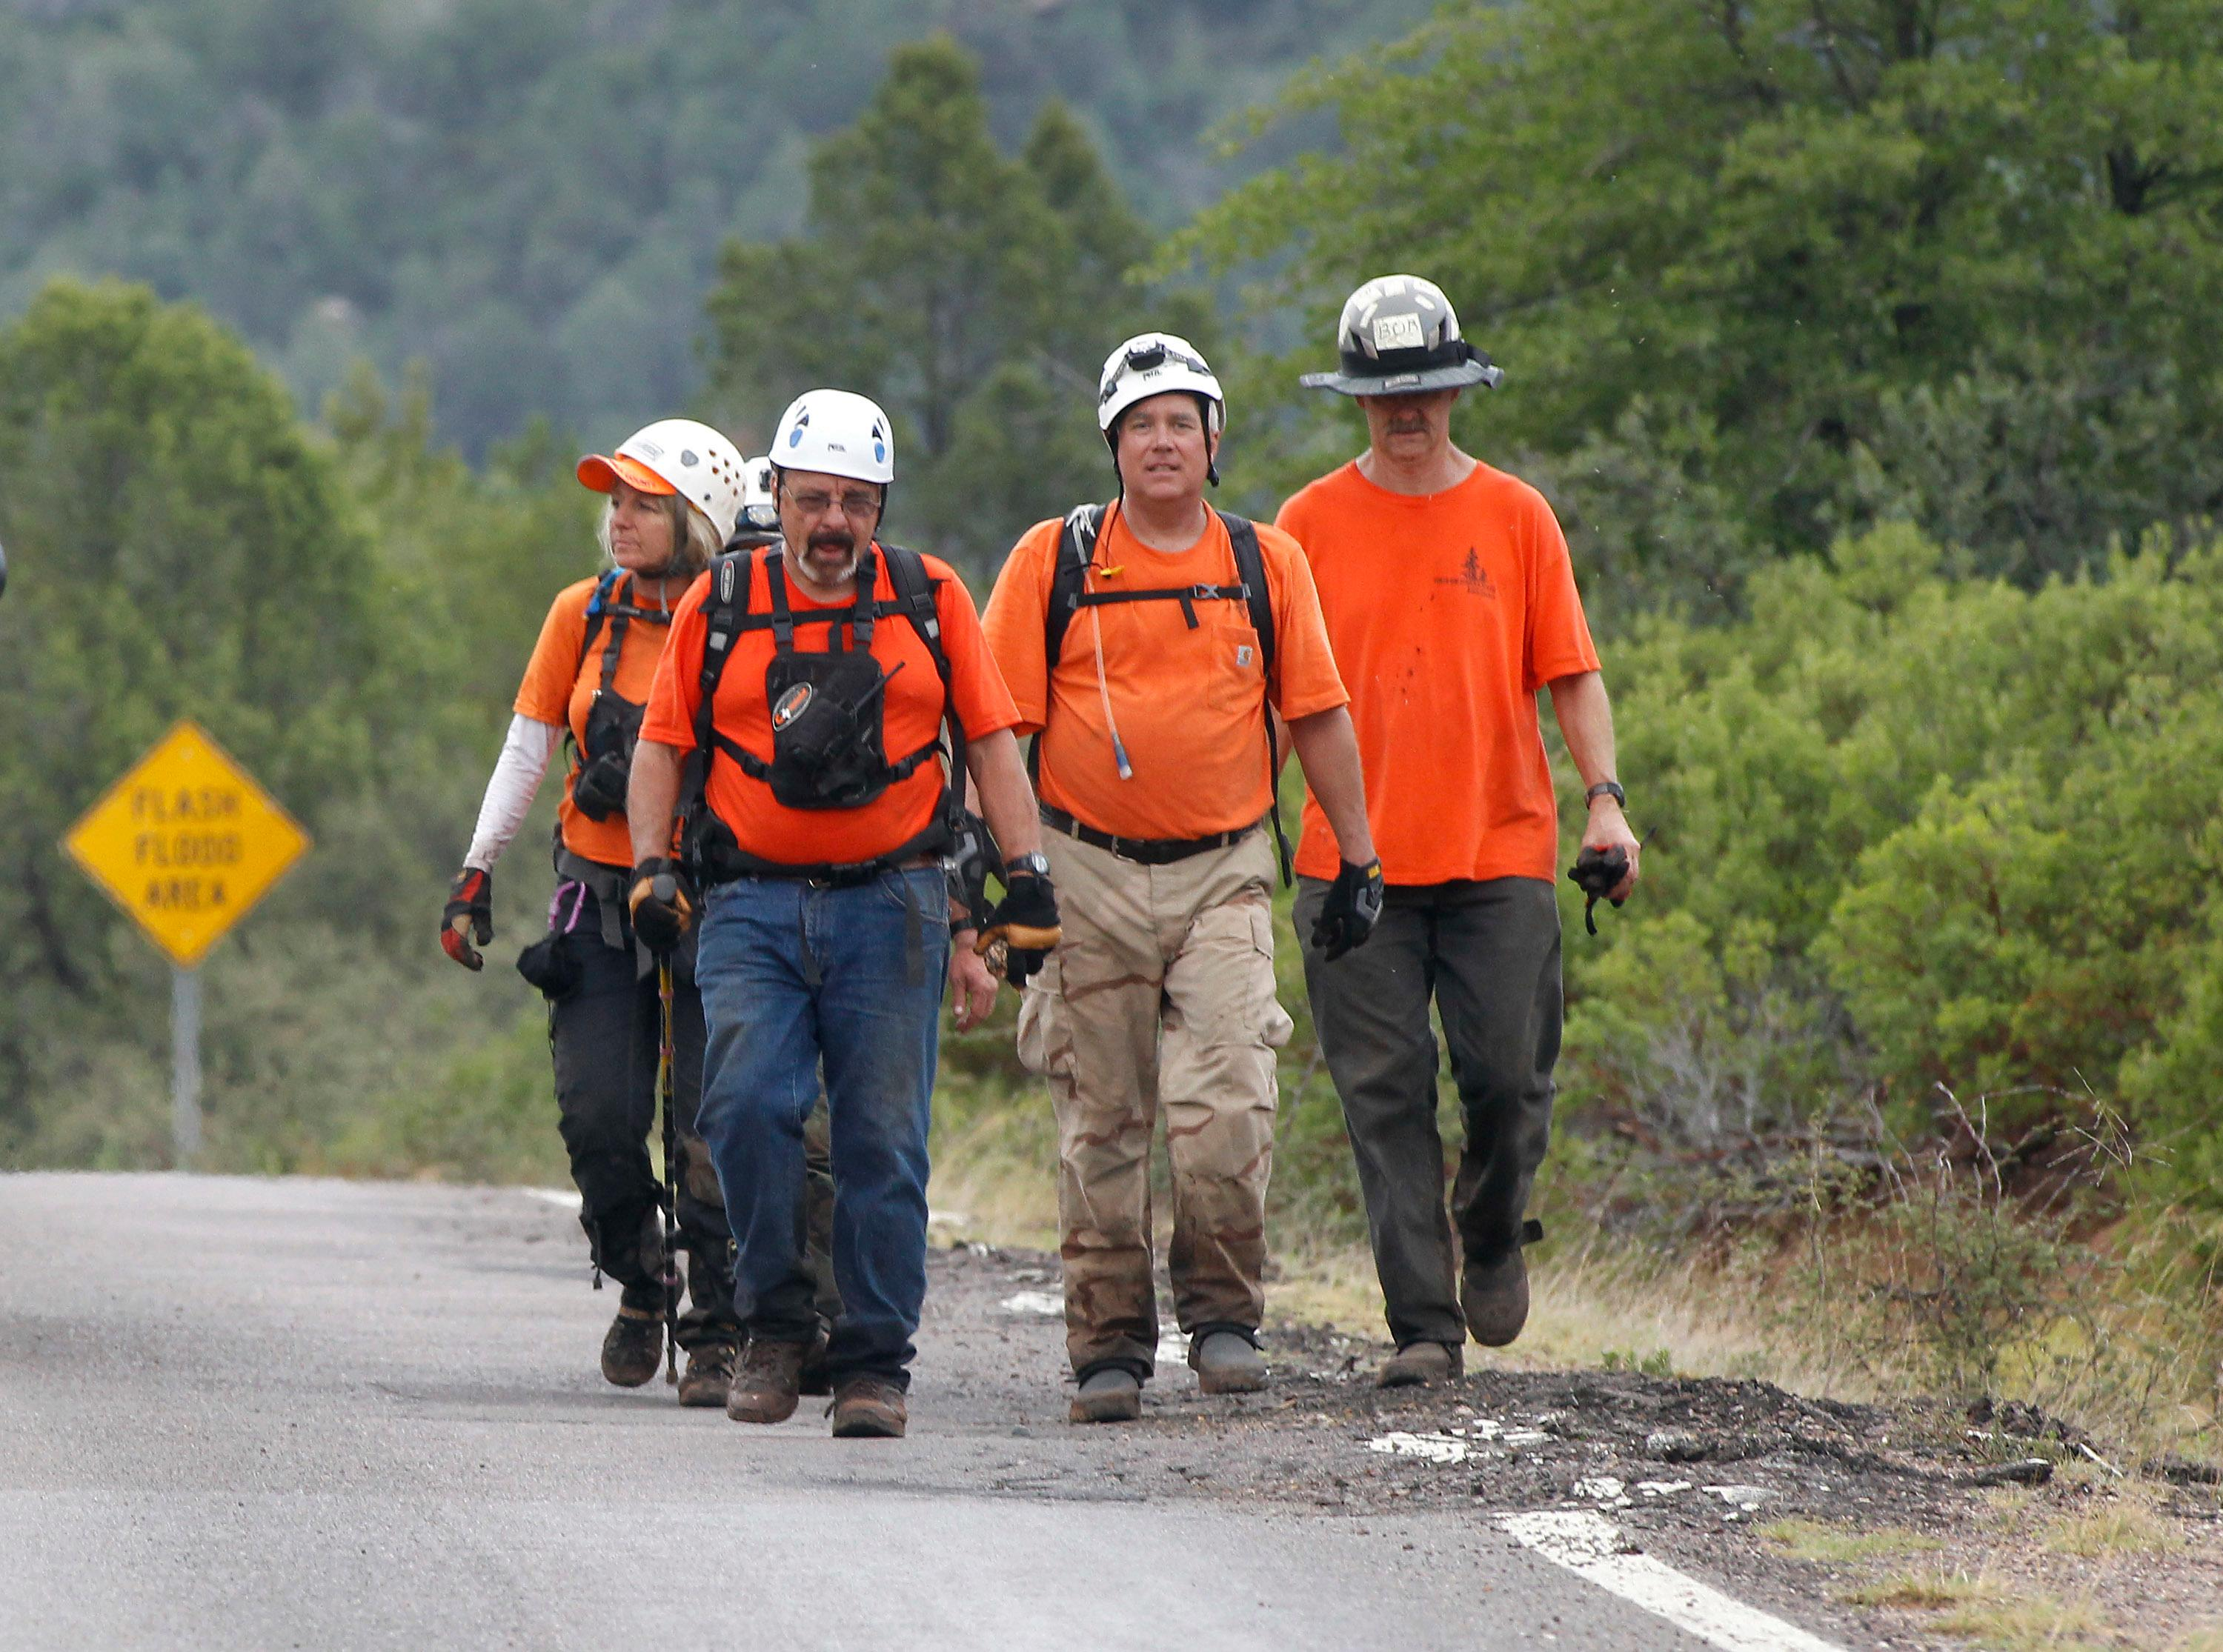 Members of the Tonto Rim Search and Rescue team walk back to the Gila County Sheriff's Office mobile command center after searching along the banks of the East Verde River, Sunday, July 16, 2017, in Payson, Ariz. Search and rescue crews, including 40 people on foot and others in a helicopter, recovered bodies of children and adults, some as far as two miles down the river after Saturday's flash flooding poured over a popular swimming area inside the Tonto National Forest in central Arizona. (AP Photo/Ralph Freso)